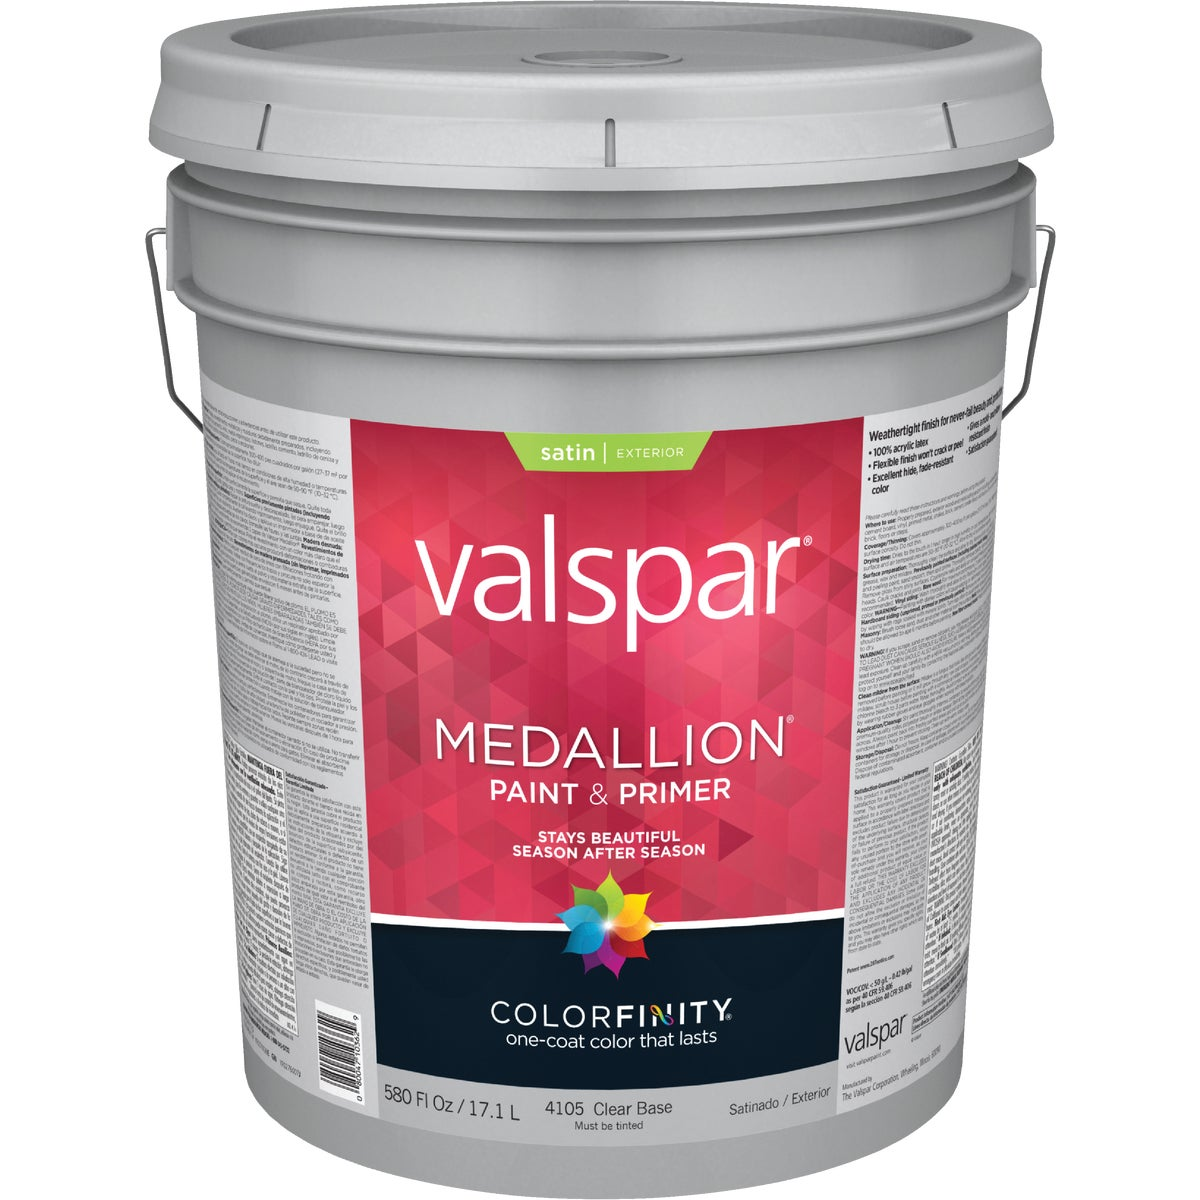 EXT SAT CLEAR BS PAINT - 027.0004105.008 by Valspar Corp